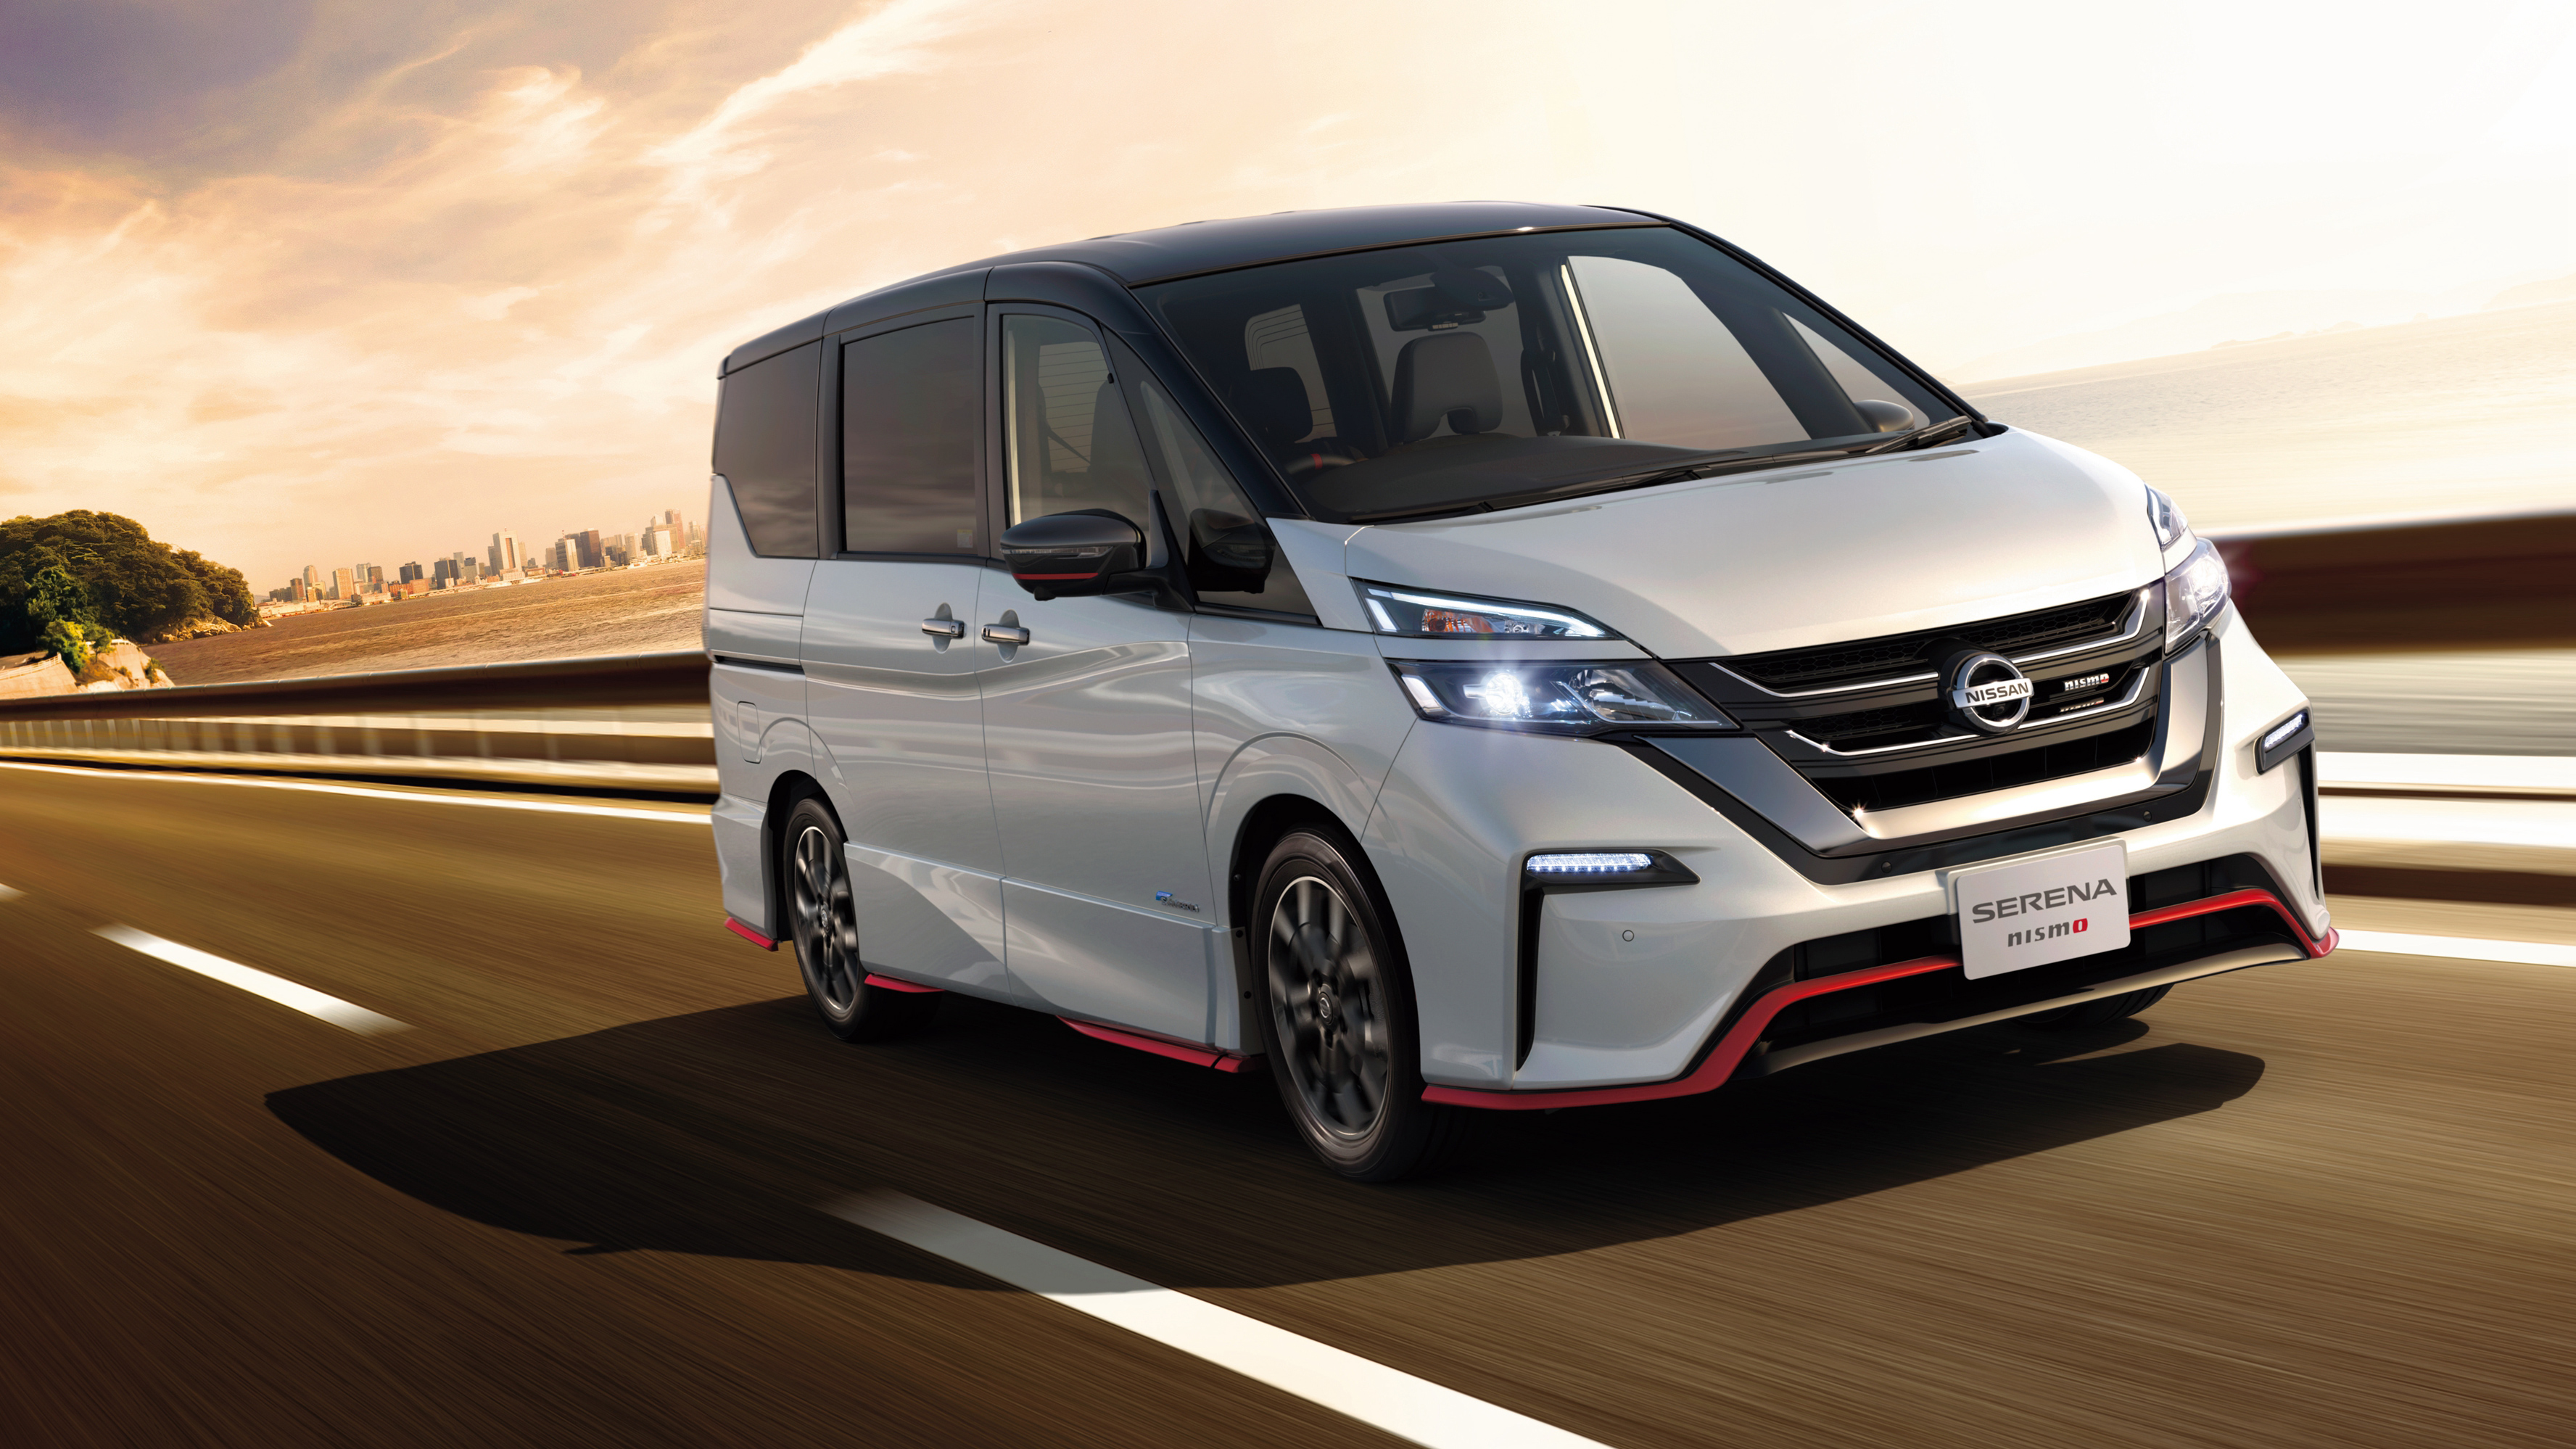 2018 Nissan Serena - New Car Release Date and Review 2018 ...